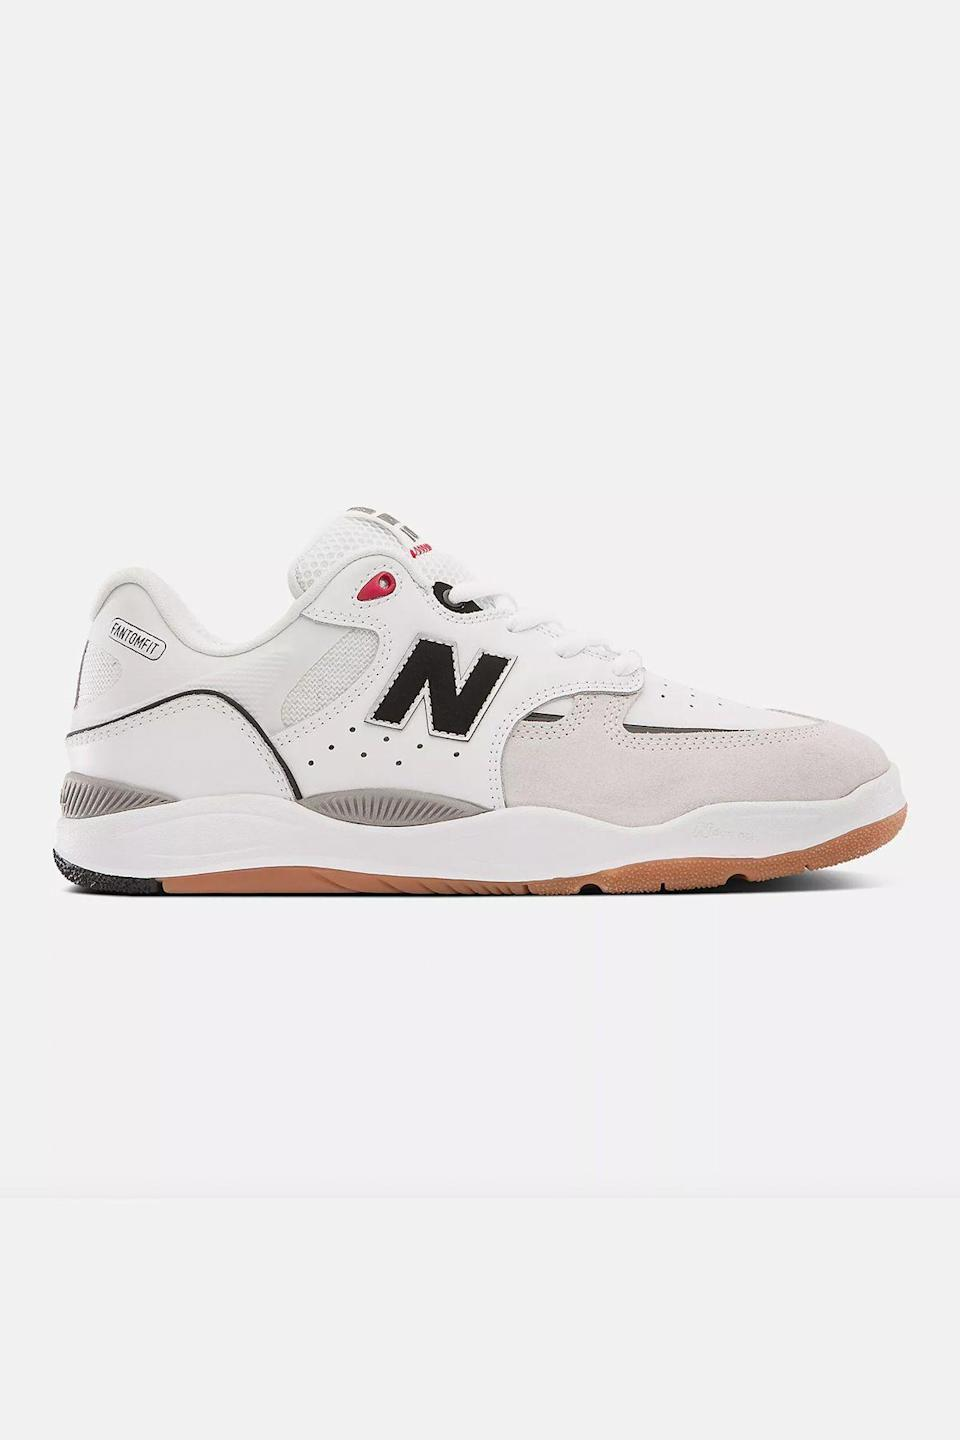 """<p><strong>New Balance</strong></p><p>newbalance.com</p><p><strong>$99.99</strong></p><p><a href=""""https://go.redirectingat.com?id=74968X1596630&url=https%3A%2F%2Fwww.newbalance.com%2Fpd%2Fnm1010%2FNM1010V1-35798.html&sref=https%3A%2F%2Fwww.townandcountrymag.com%2Fsociety%2Ftradition%2Fg37681411%2Fprincess-diana-sweatshirt-biker-shorts-outfit-inspiration%2F"""" rel=""""nofollow noopener"""" target=""""_blank"""" data-ylk=""""slk:Shop Now"""" class=""""link rapid-noclick-resp"""">Shop Now</a></p><p>Like in her other ensembles, Diana paired this outfit with chunky white sneakers and white crew socks. </p>"""